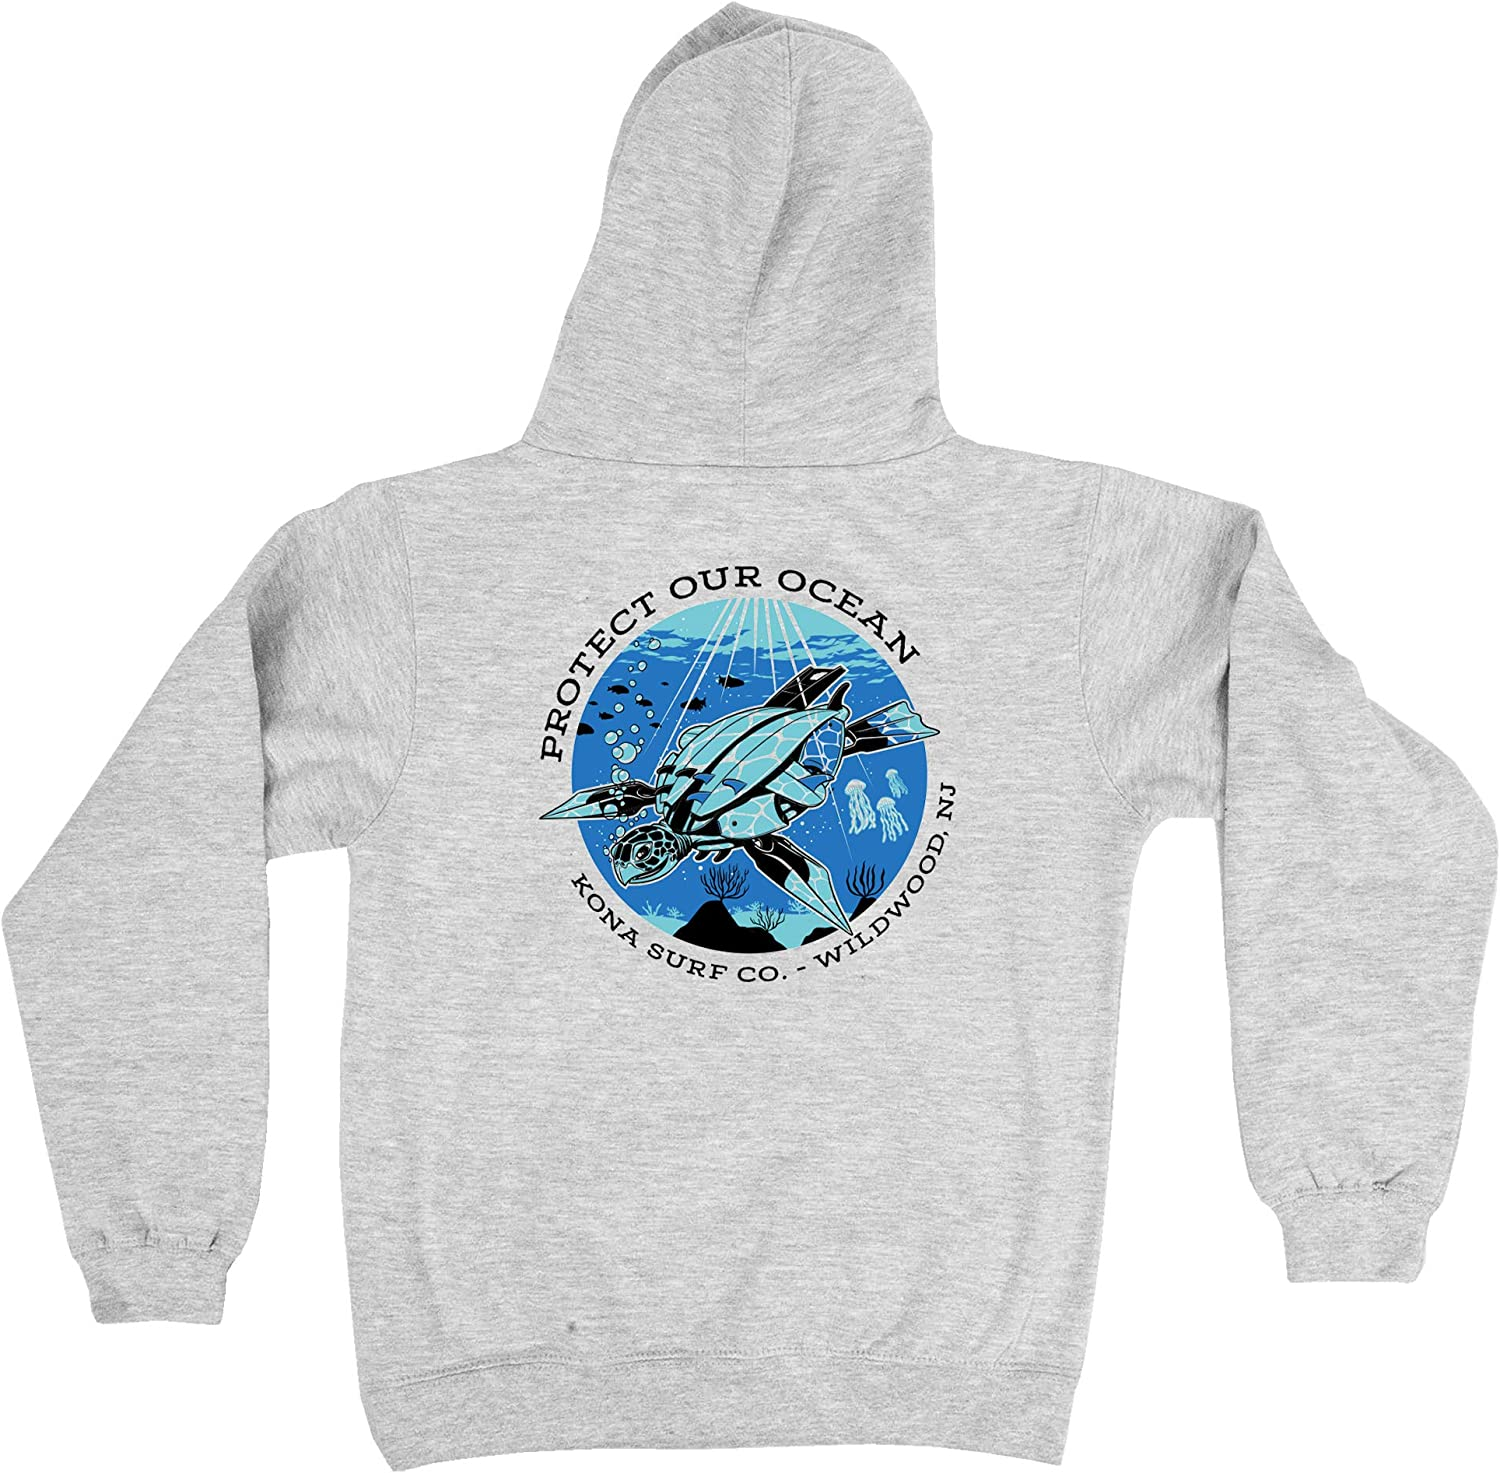 KONA SURF CO. Protect Our Ocean Boys Pullover Hoodie